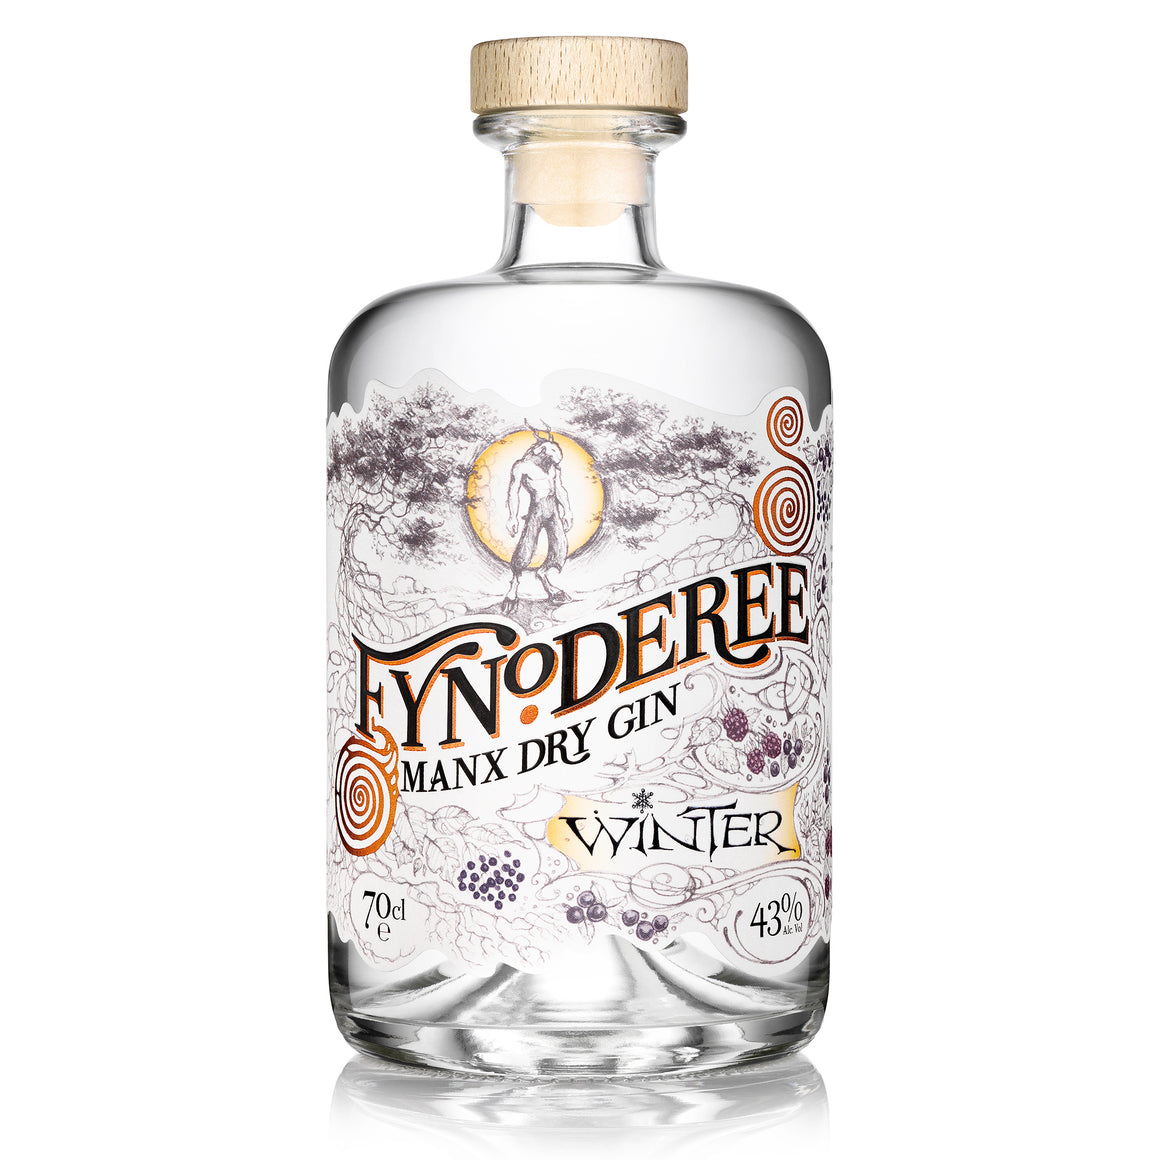 Fynoderee Winter Edition Gin